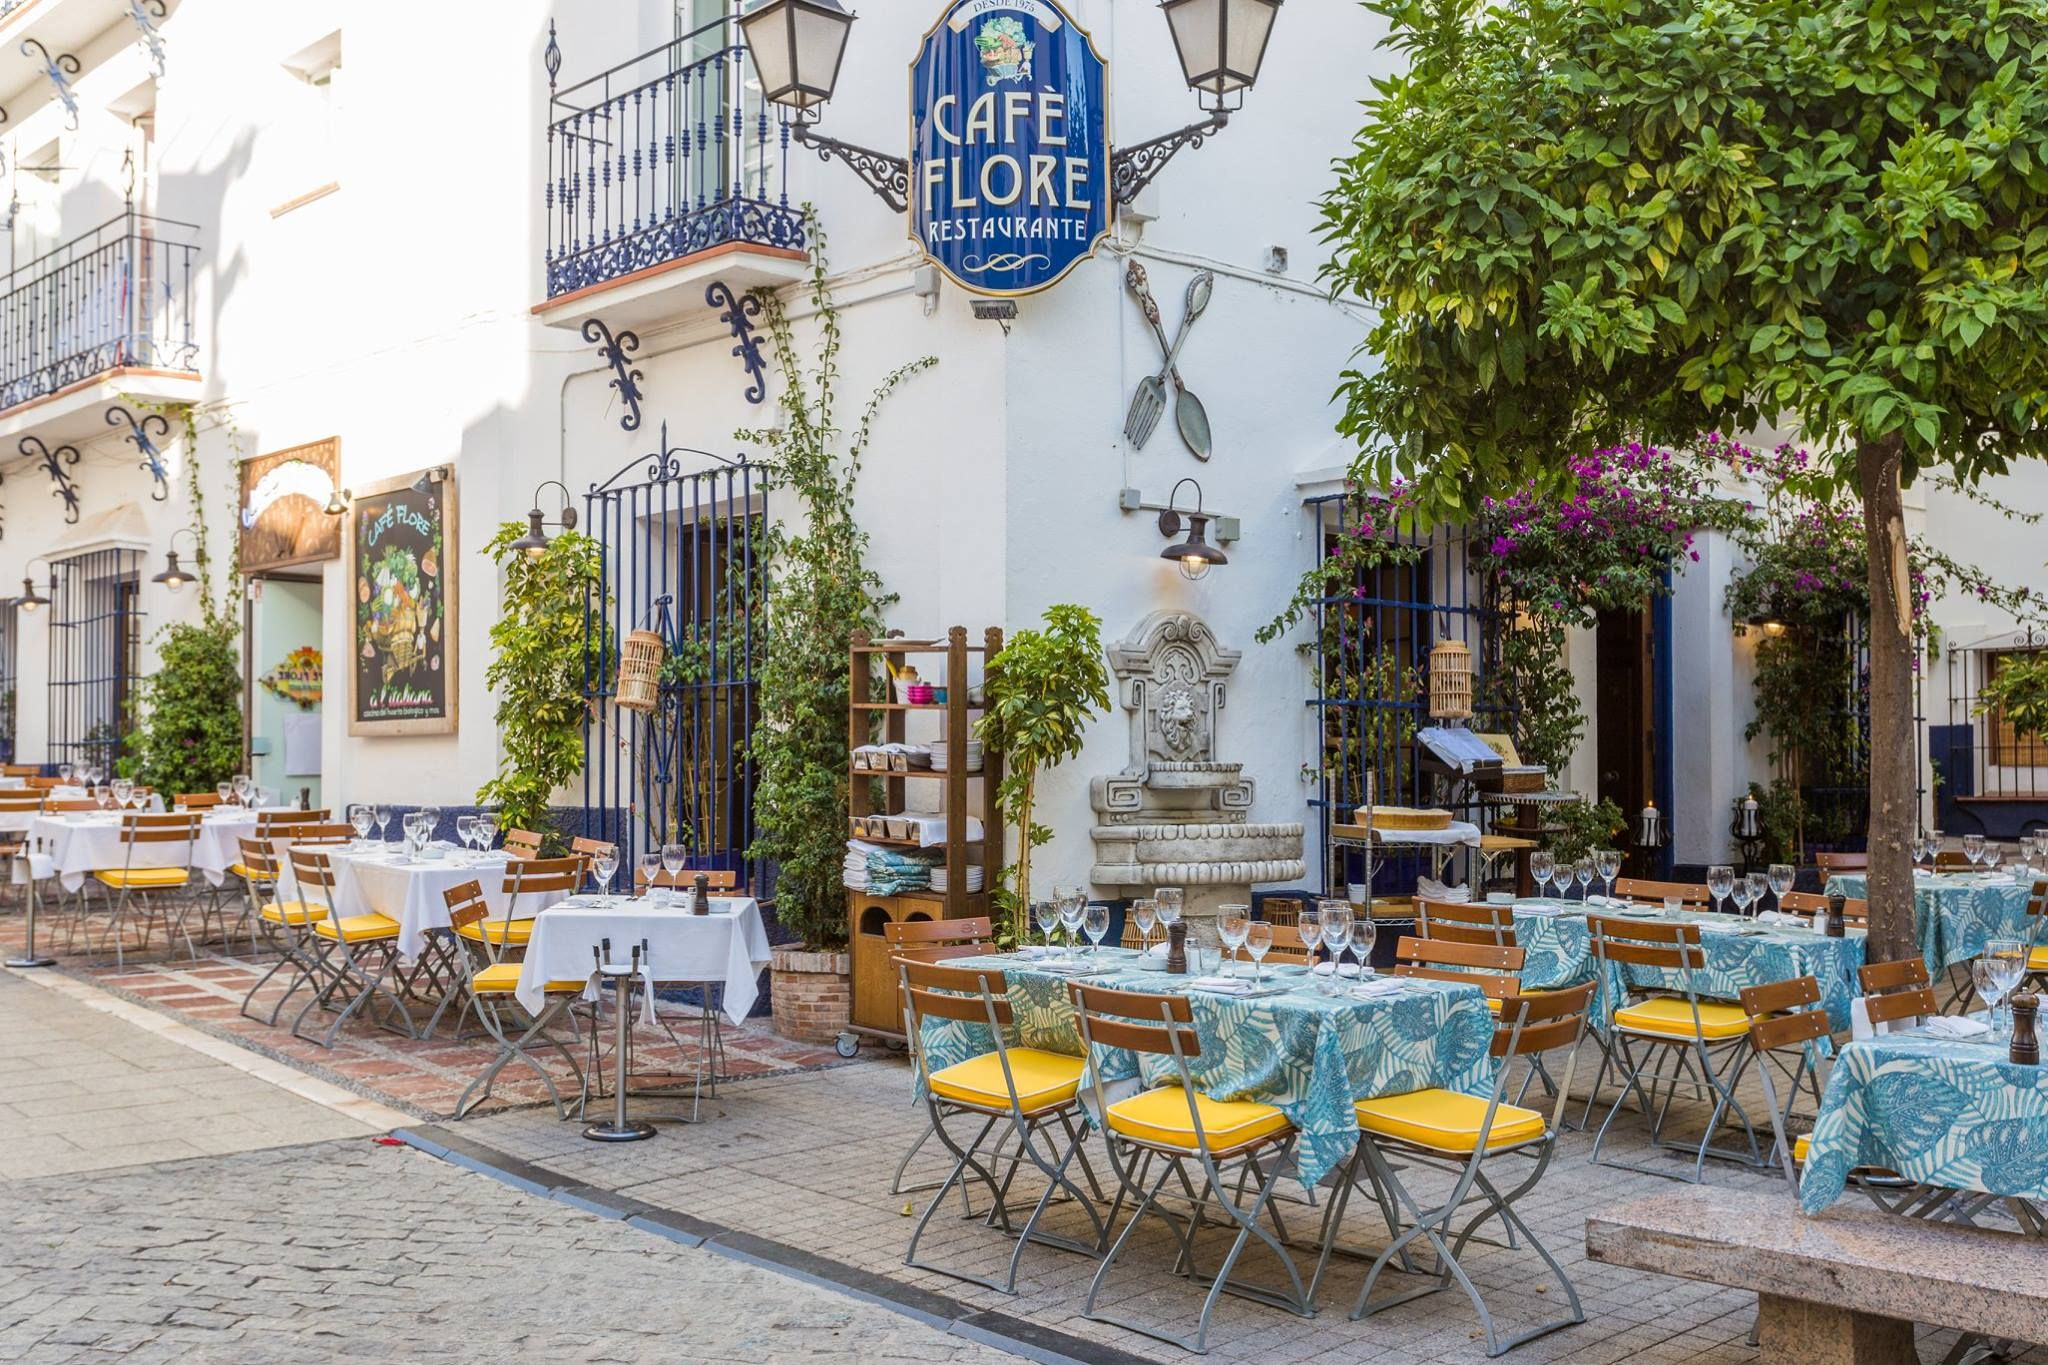 5 Best Things To Do In Marbella Marbella Spain Marbella Old Town Costa Del Sol Spain